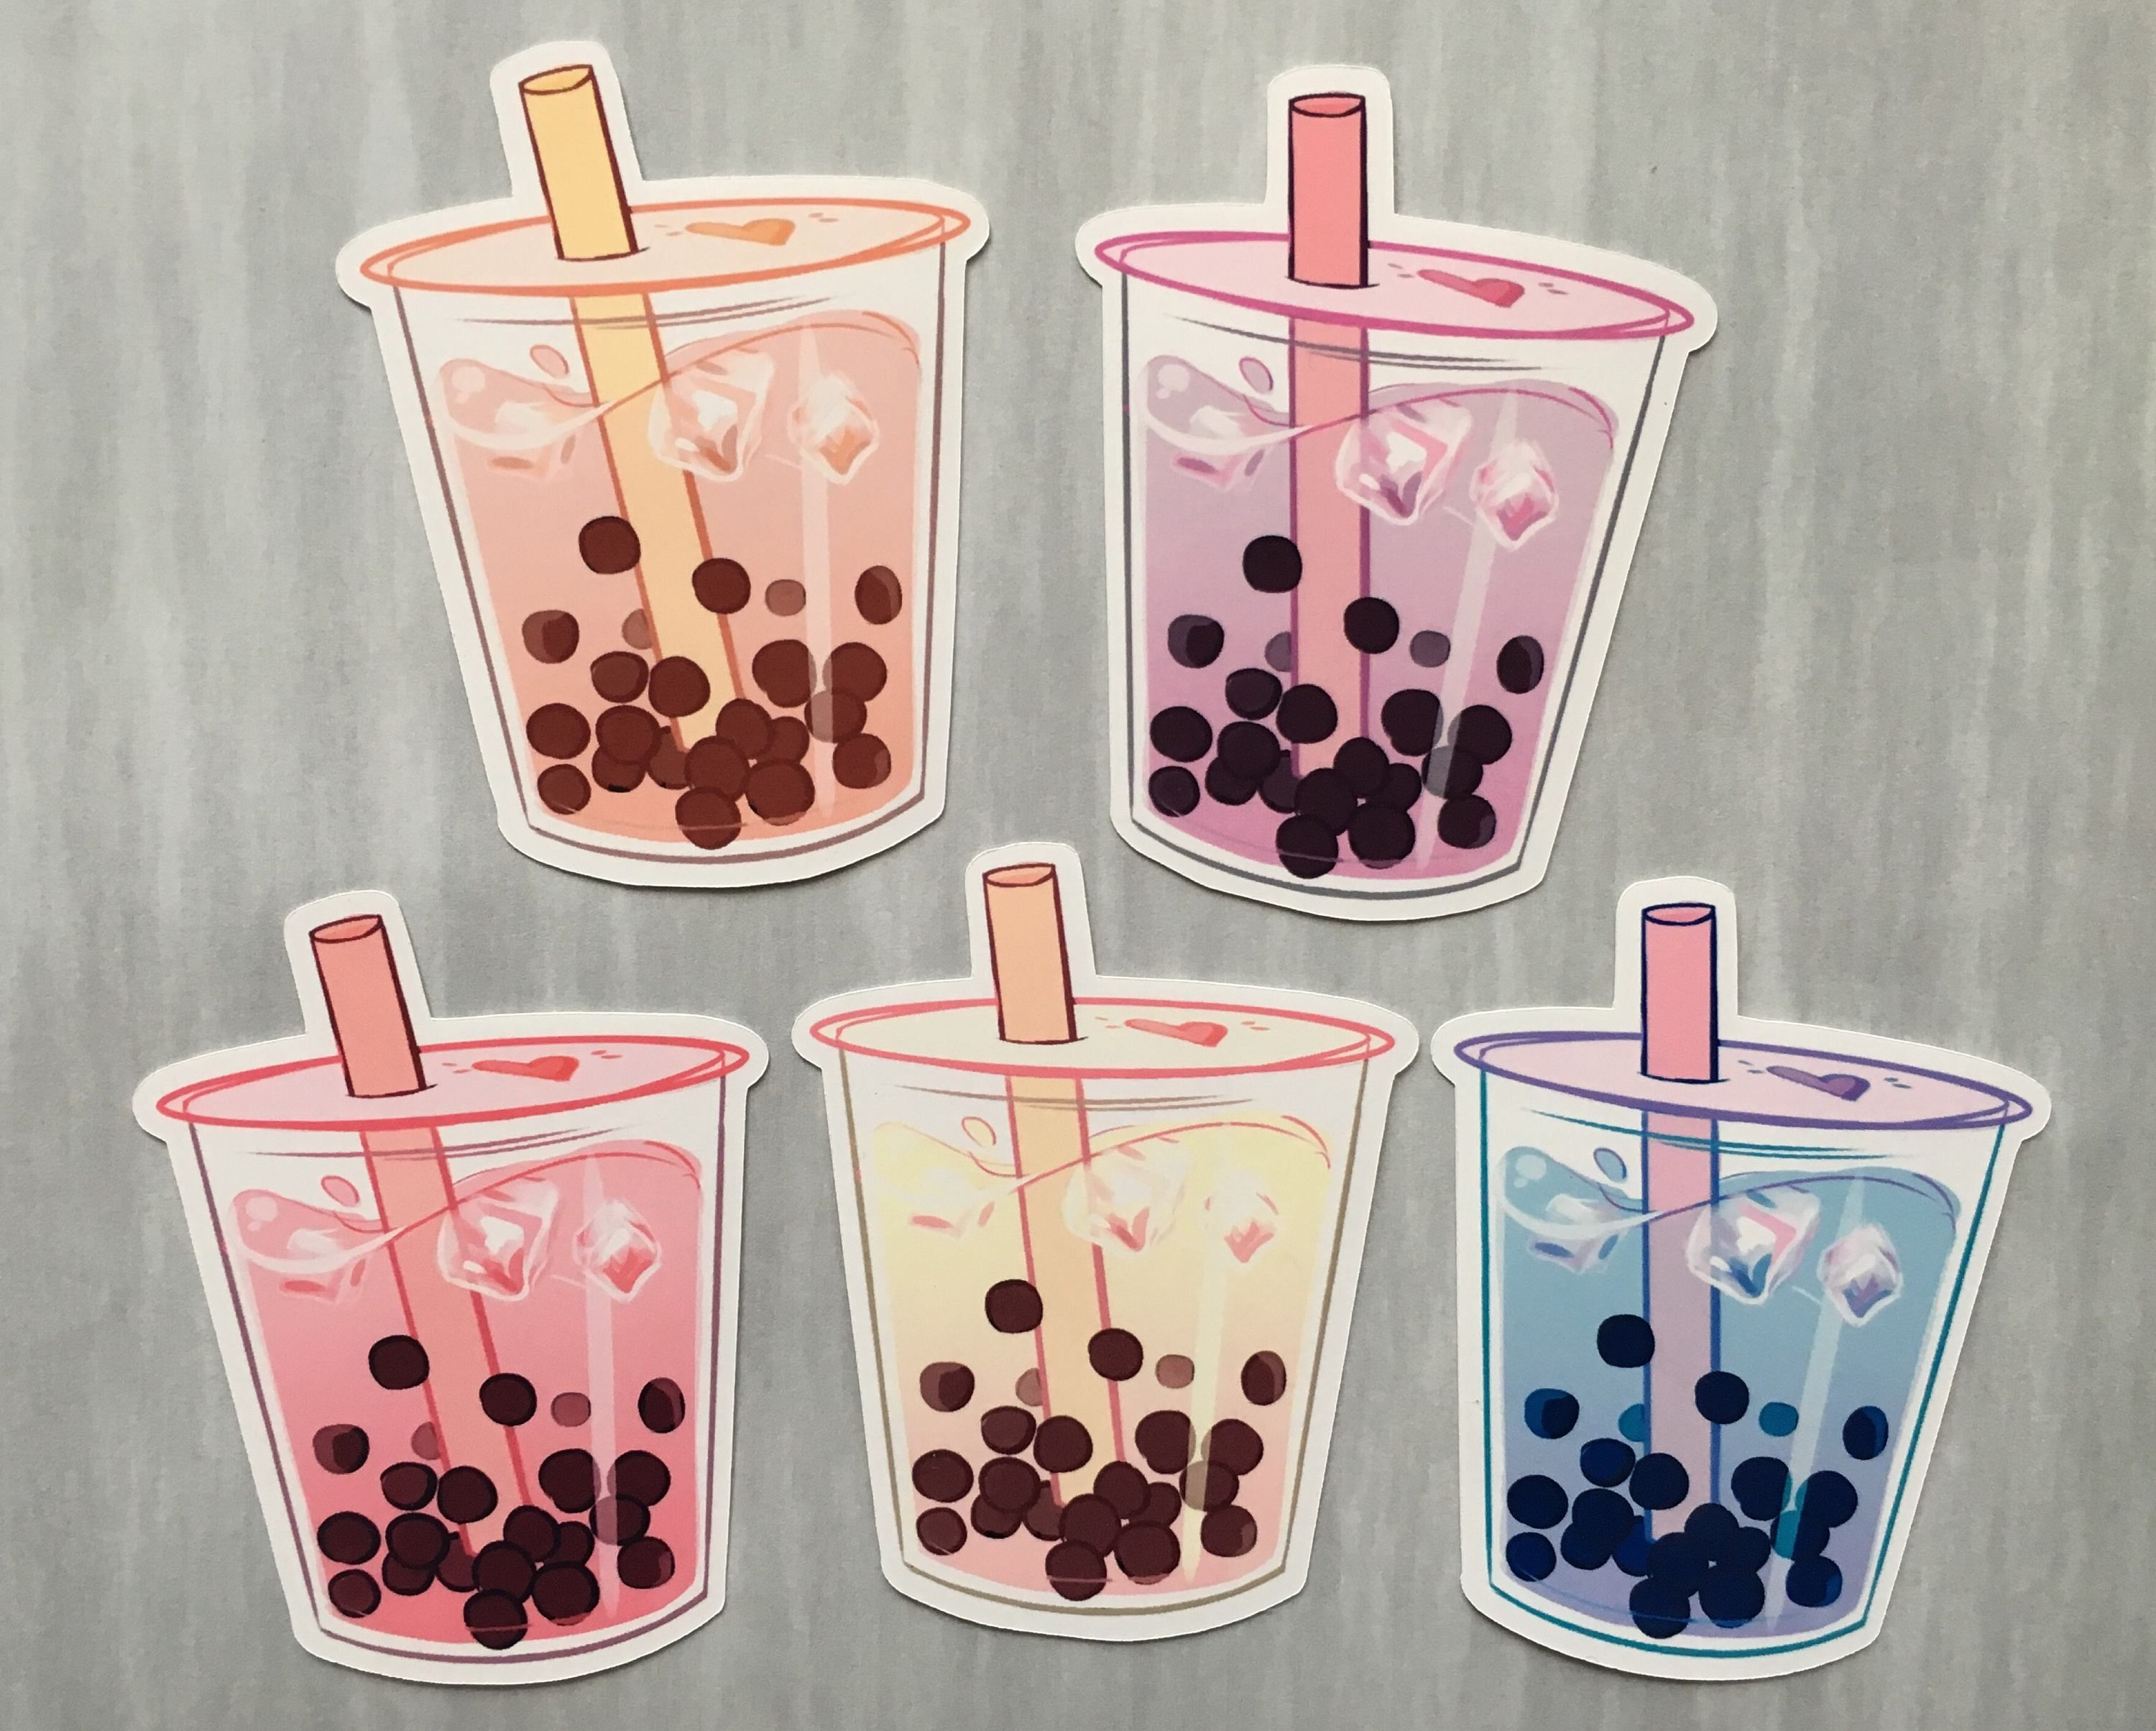 Aesthetic Bubble Tea Places